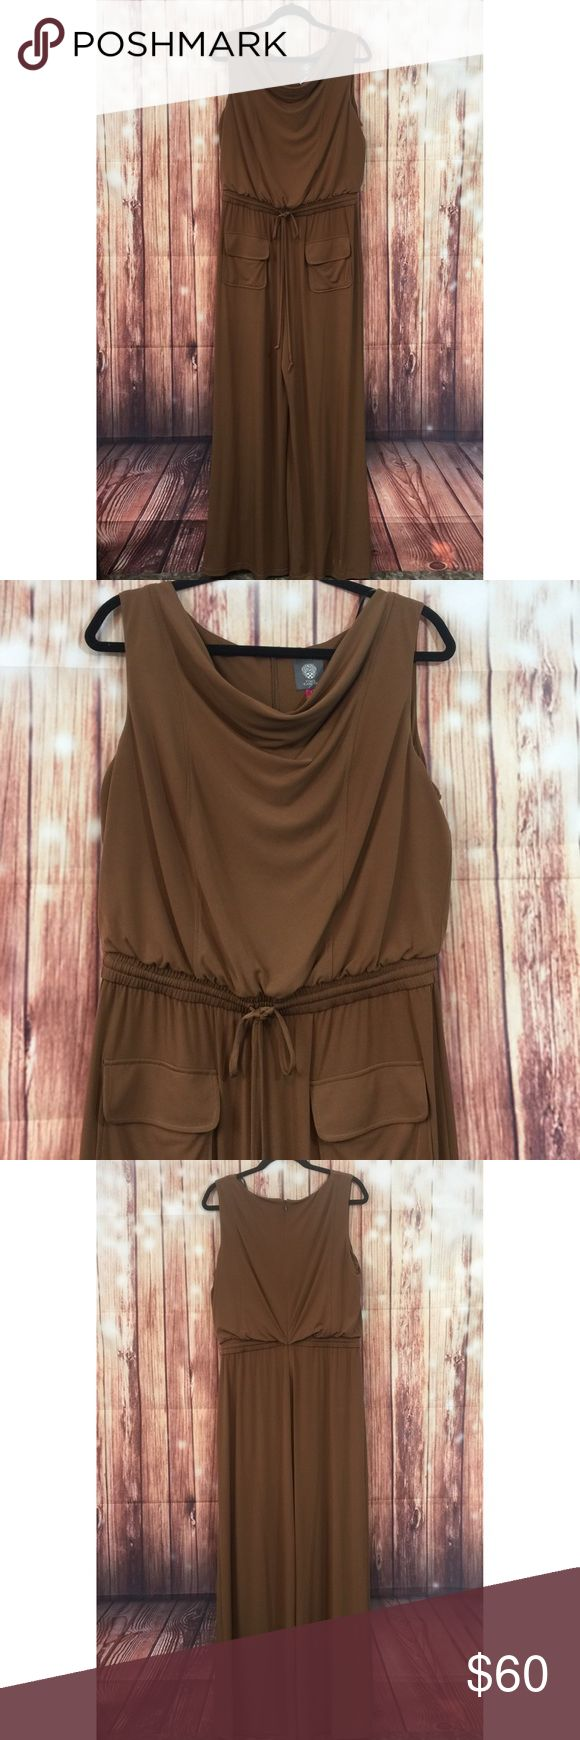 Vince Camuto Jumpsuit Vince Camuto Brown Jumpsuit Sz L . Zip back closure/Cowl neckline/drawstring waist/2 front pockets /wide leg design. Great Condition! No signs of wear .   Shell 95%polyester            5%Spandex Lining 100%Polyester  Measurements are approximate taken with garment laying on a flat surface   Breast 40 inches Waist 30 inches Length from waist 45 inches Length from shoulder 63 inches Leg opening 30 inches Vince Camuto Pants Jumpsuits & Rompers